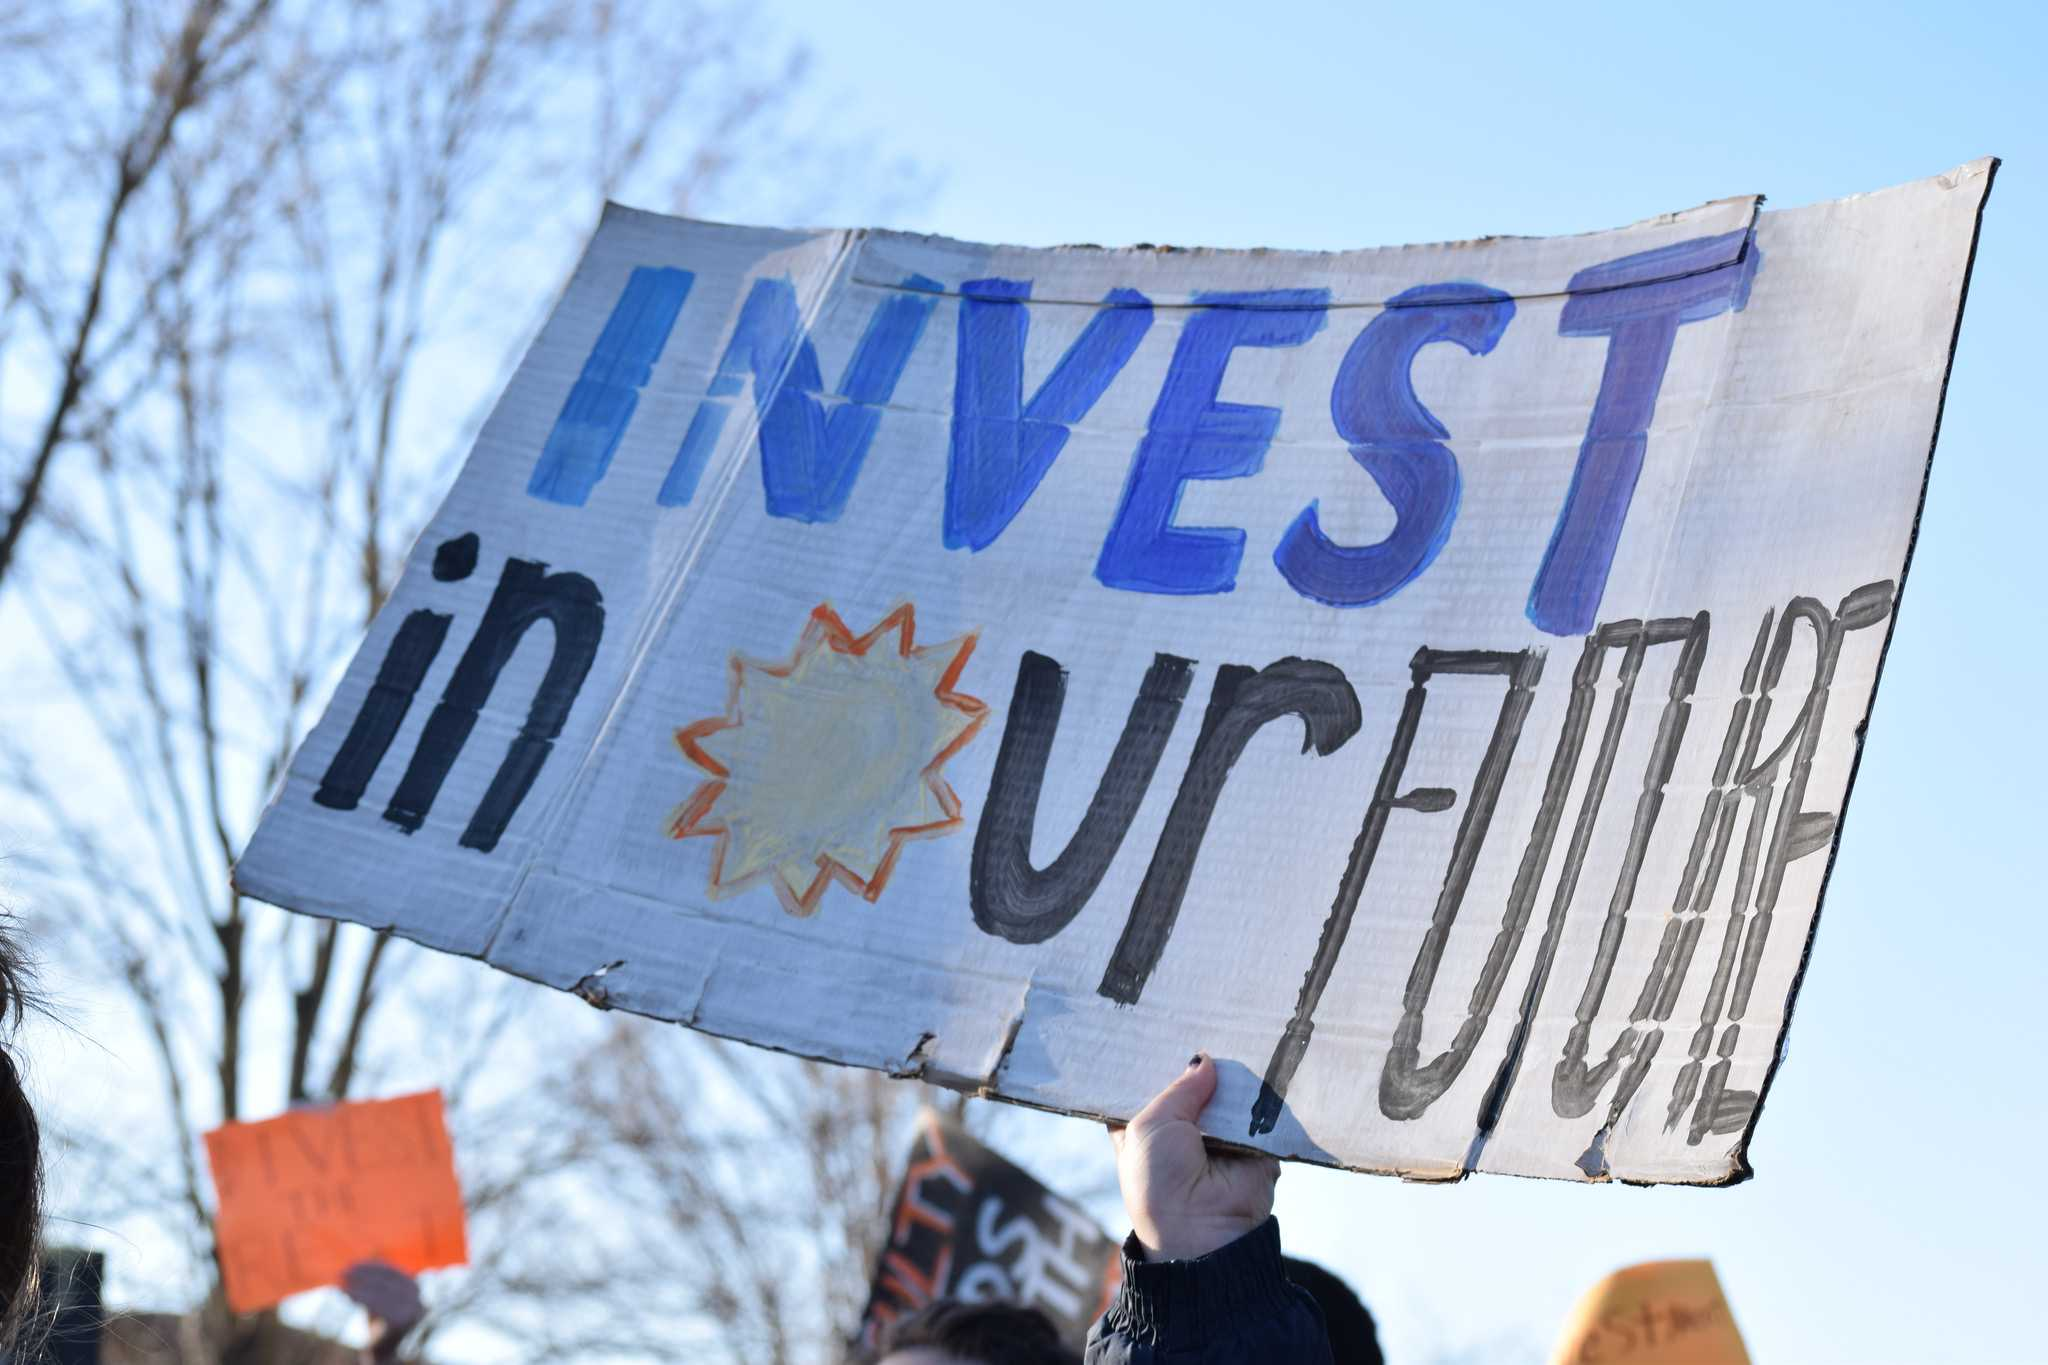 SLIDESHOW: Divest the Rest sit-in, day 4